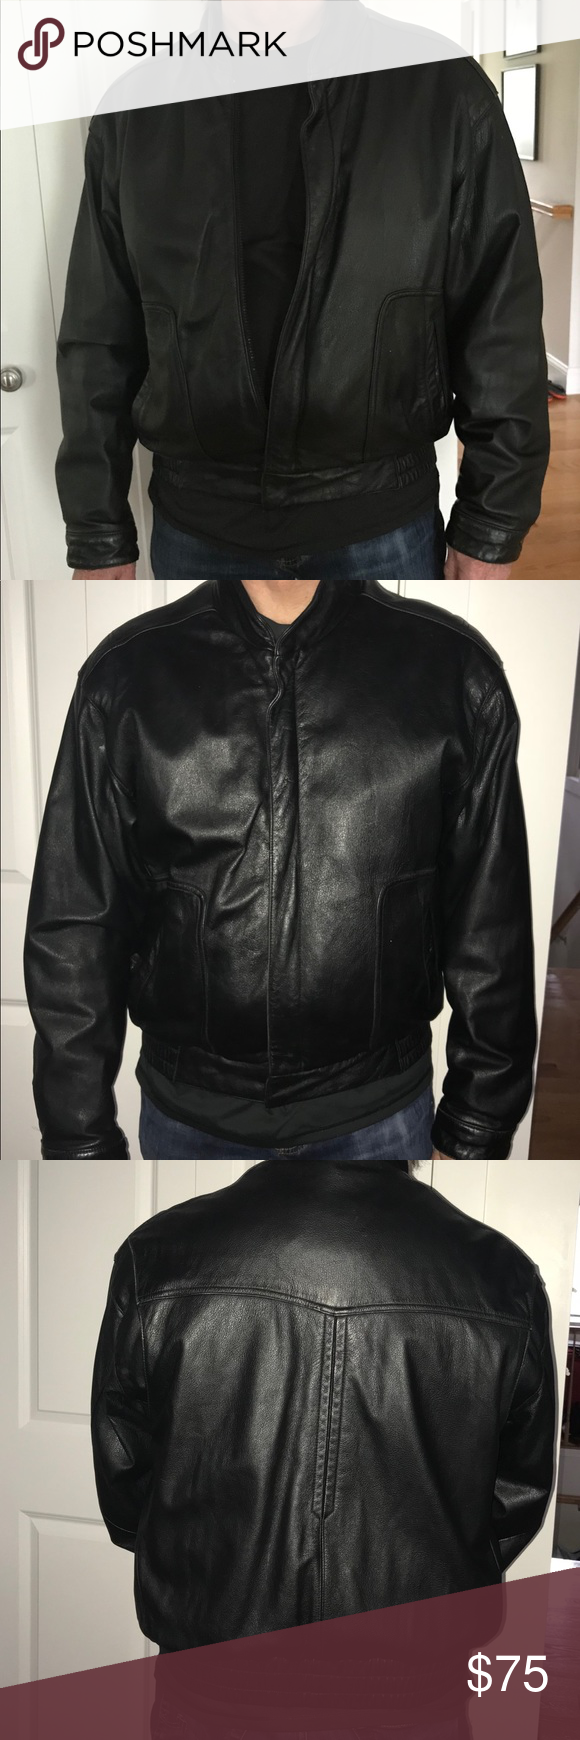 Reed Leather Bomber Jacket This Is A Gently Worn Black Reed Leather Bomber Jacket With A Thinsulate Zip Out Clothes Design Leather Bomber Jacket Wearing Black [ 1740 x 580 Pixel ]